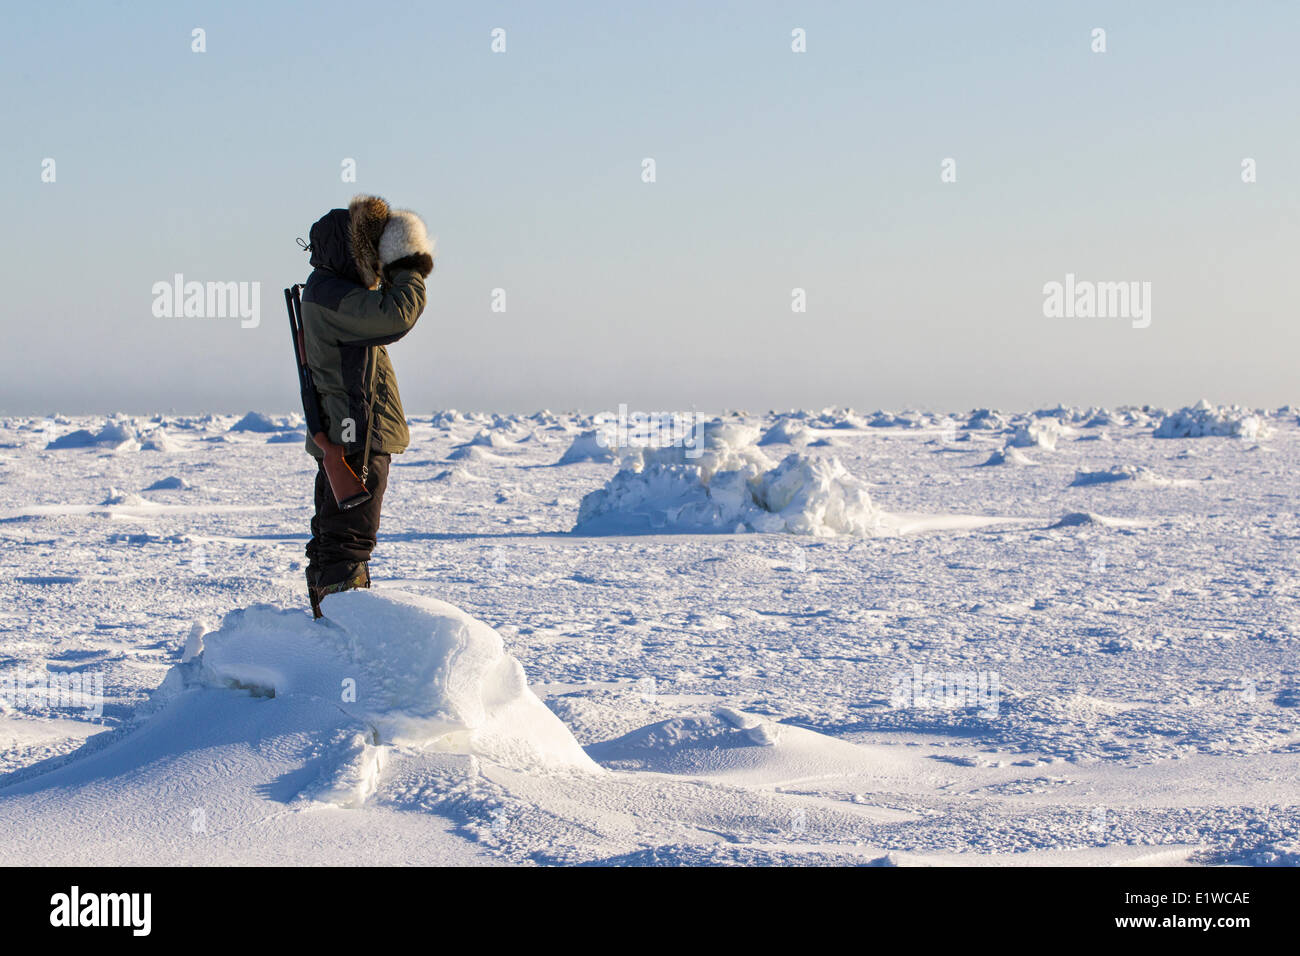 Inuit man scanning ice for polar bears, west coast Hudson Bay, south of Arviat, Nunavut, Canada - Stock Image